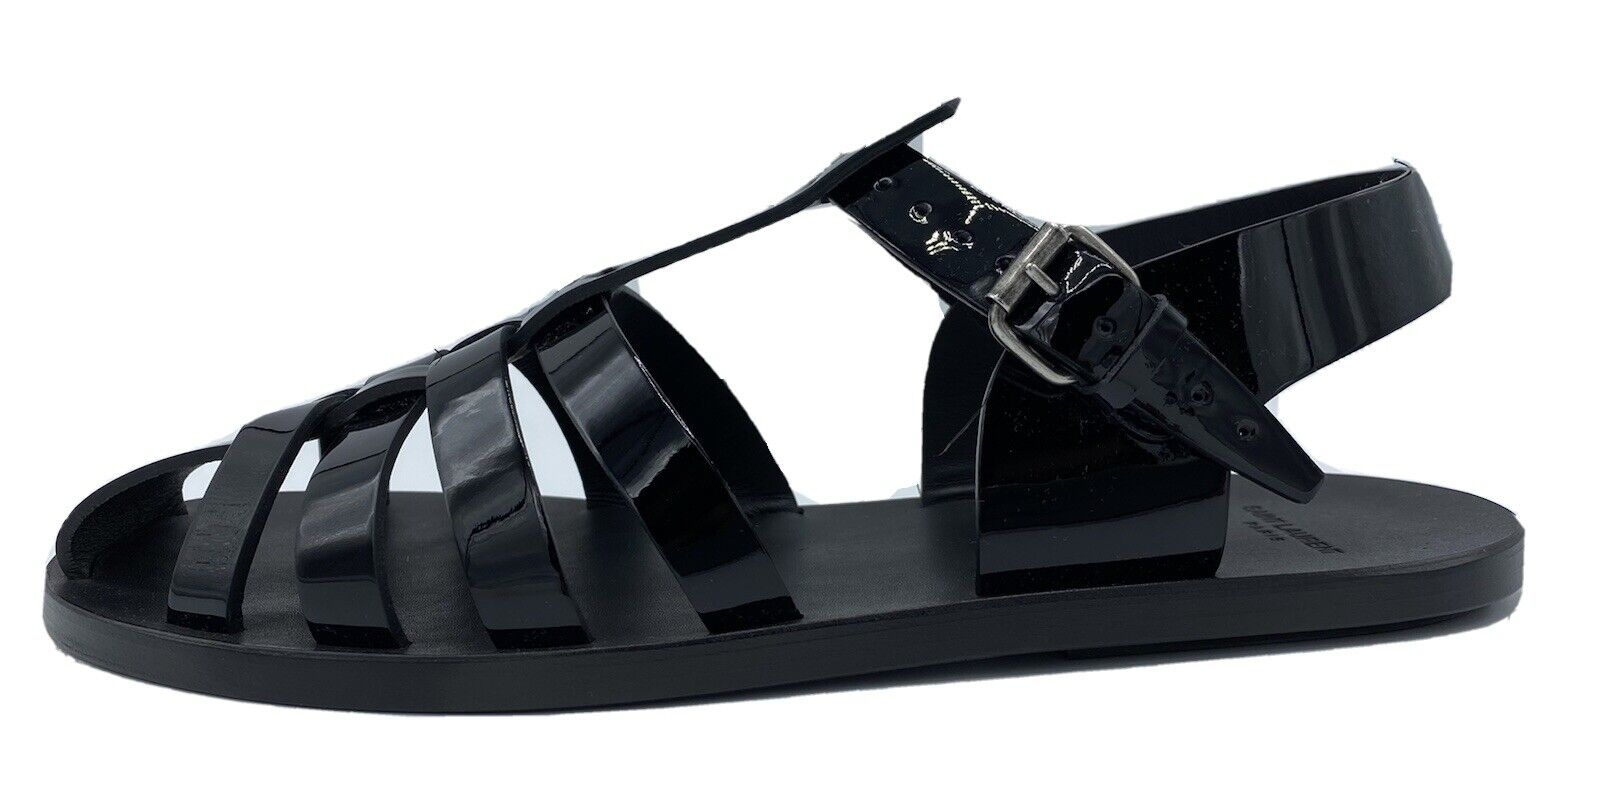 Saint Laurent Black Patent Leather Sandals size US 12, Made in Italy